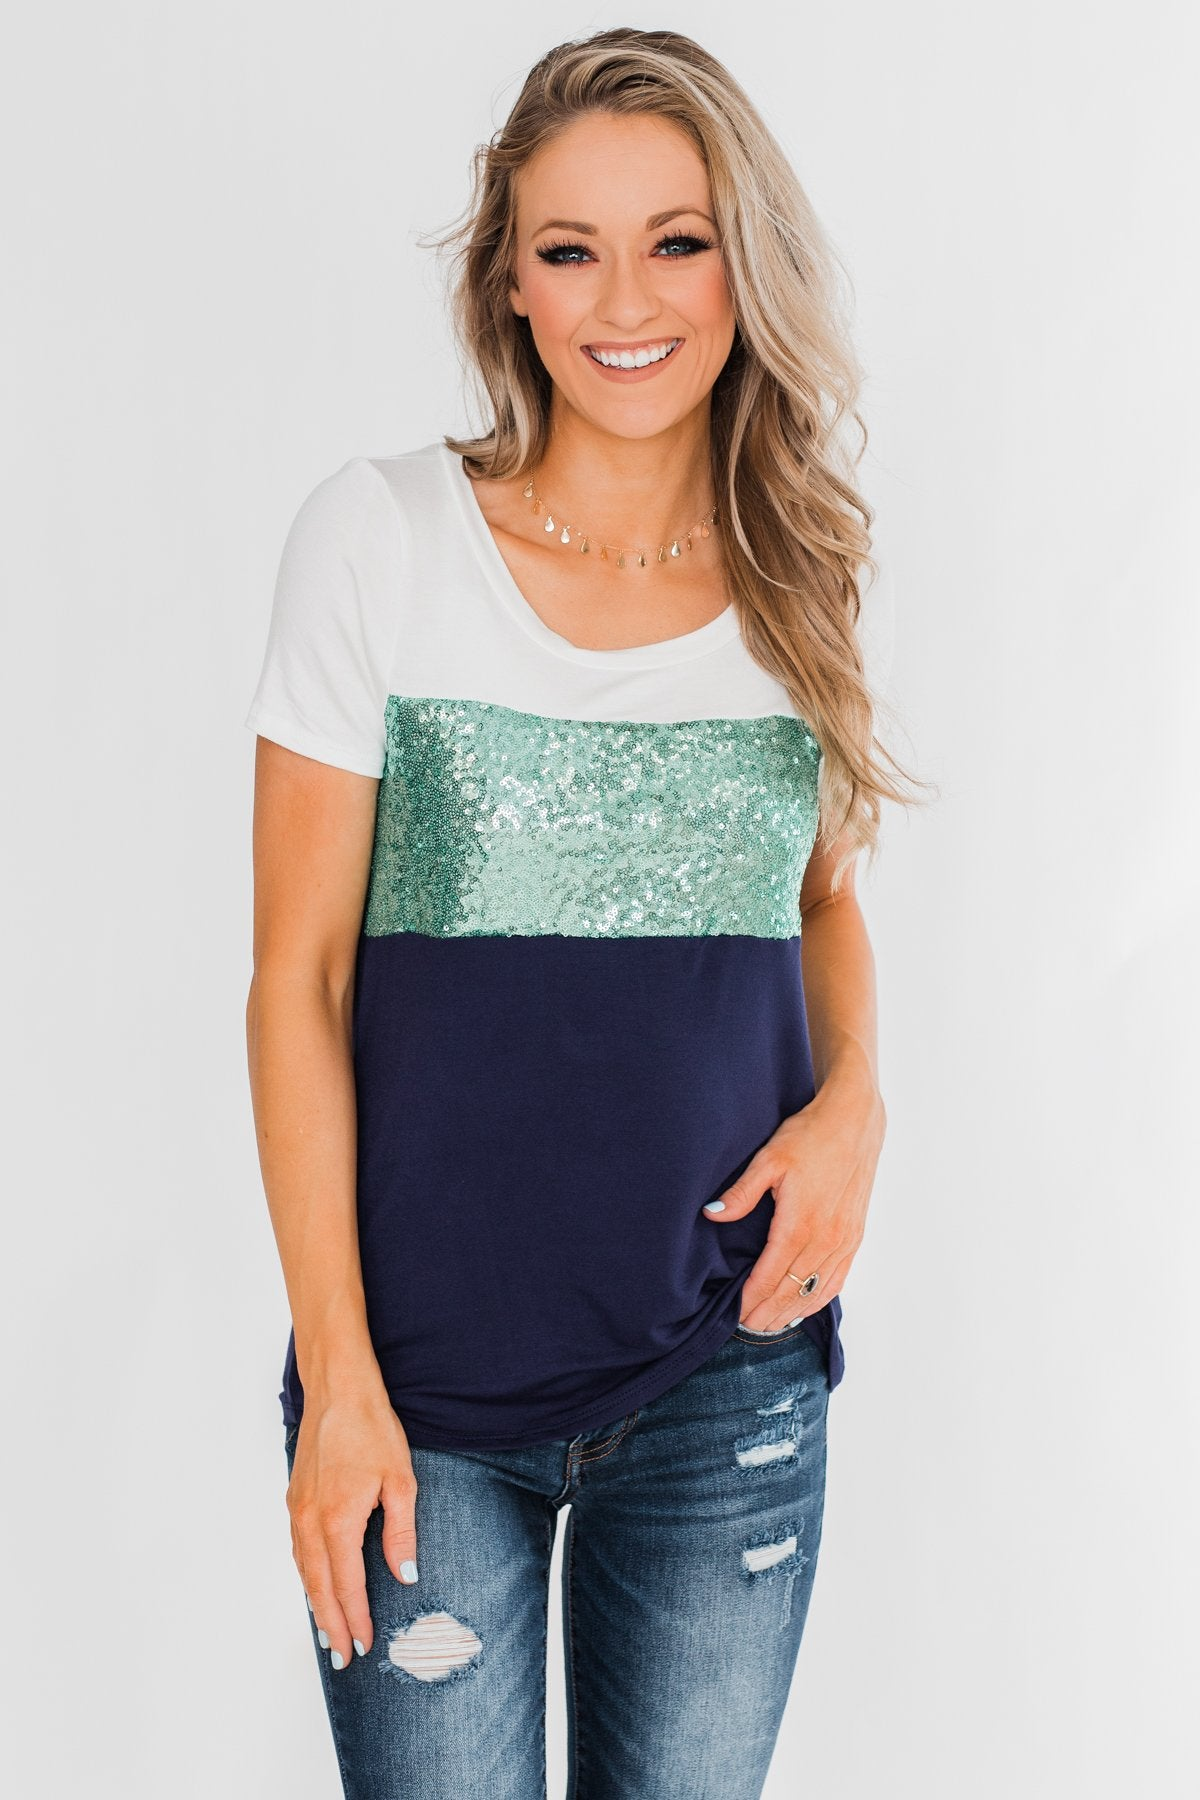 Part Of Your World Sequin Top- Teal Green & Navy